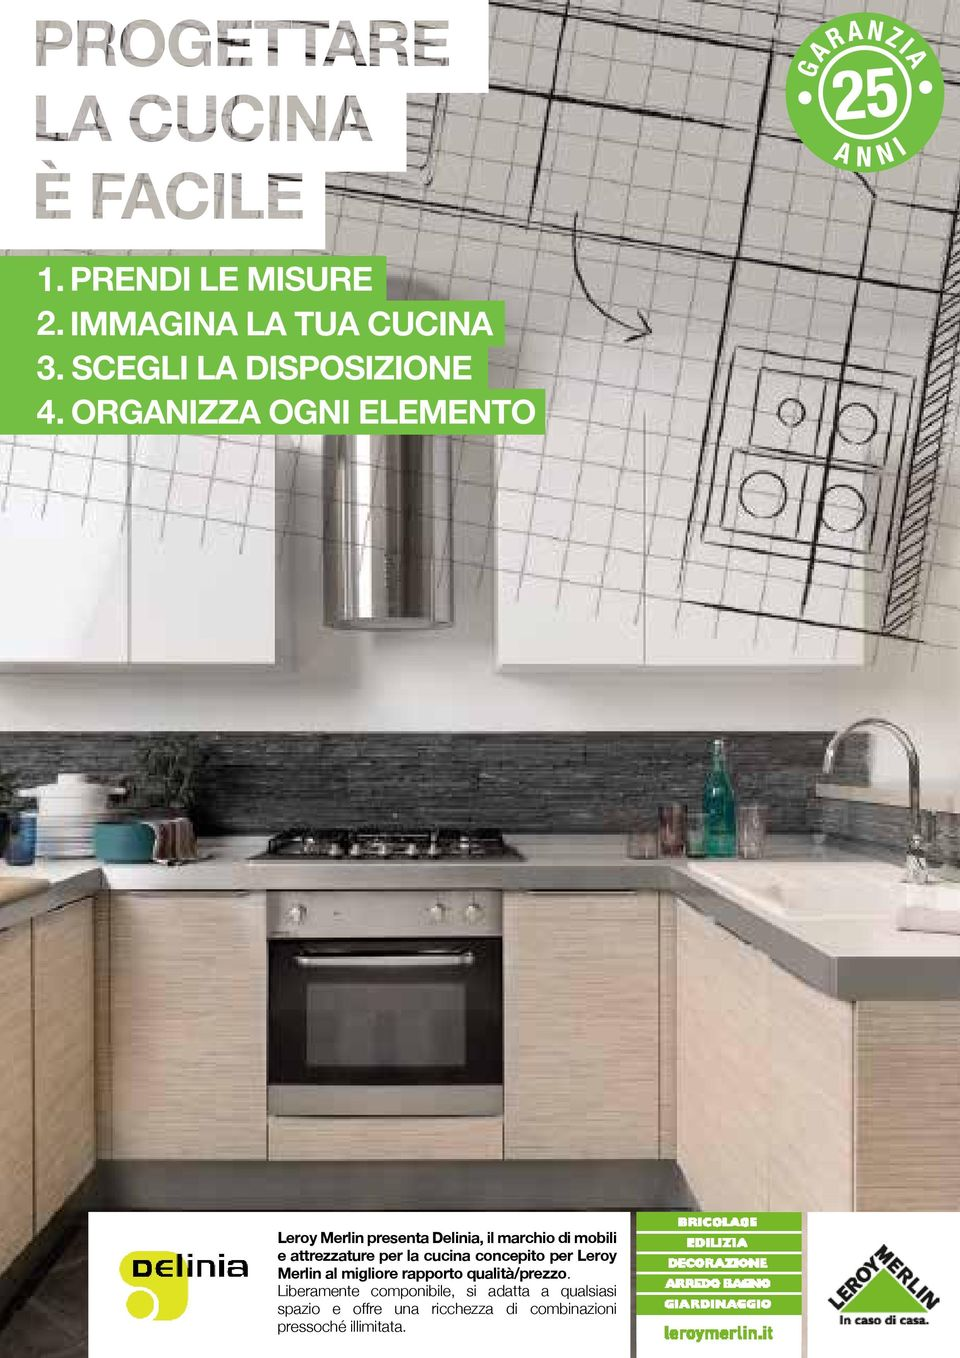 Emejing Leroy Merlin Cucine Photos - Design & Ideas 2017 - candp.us